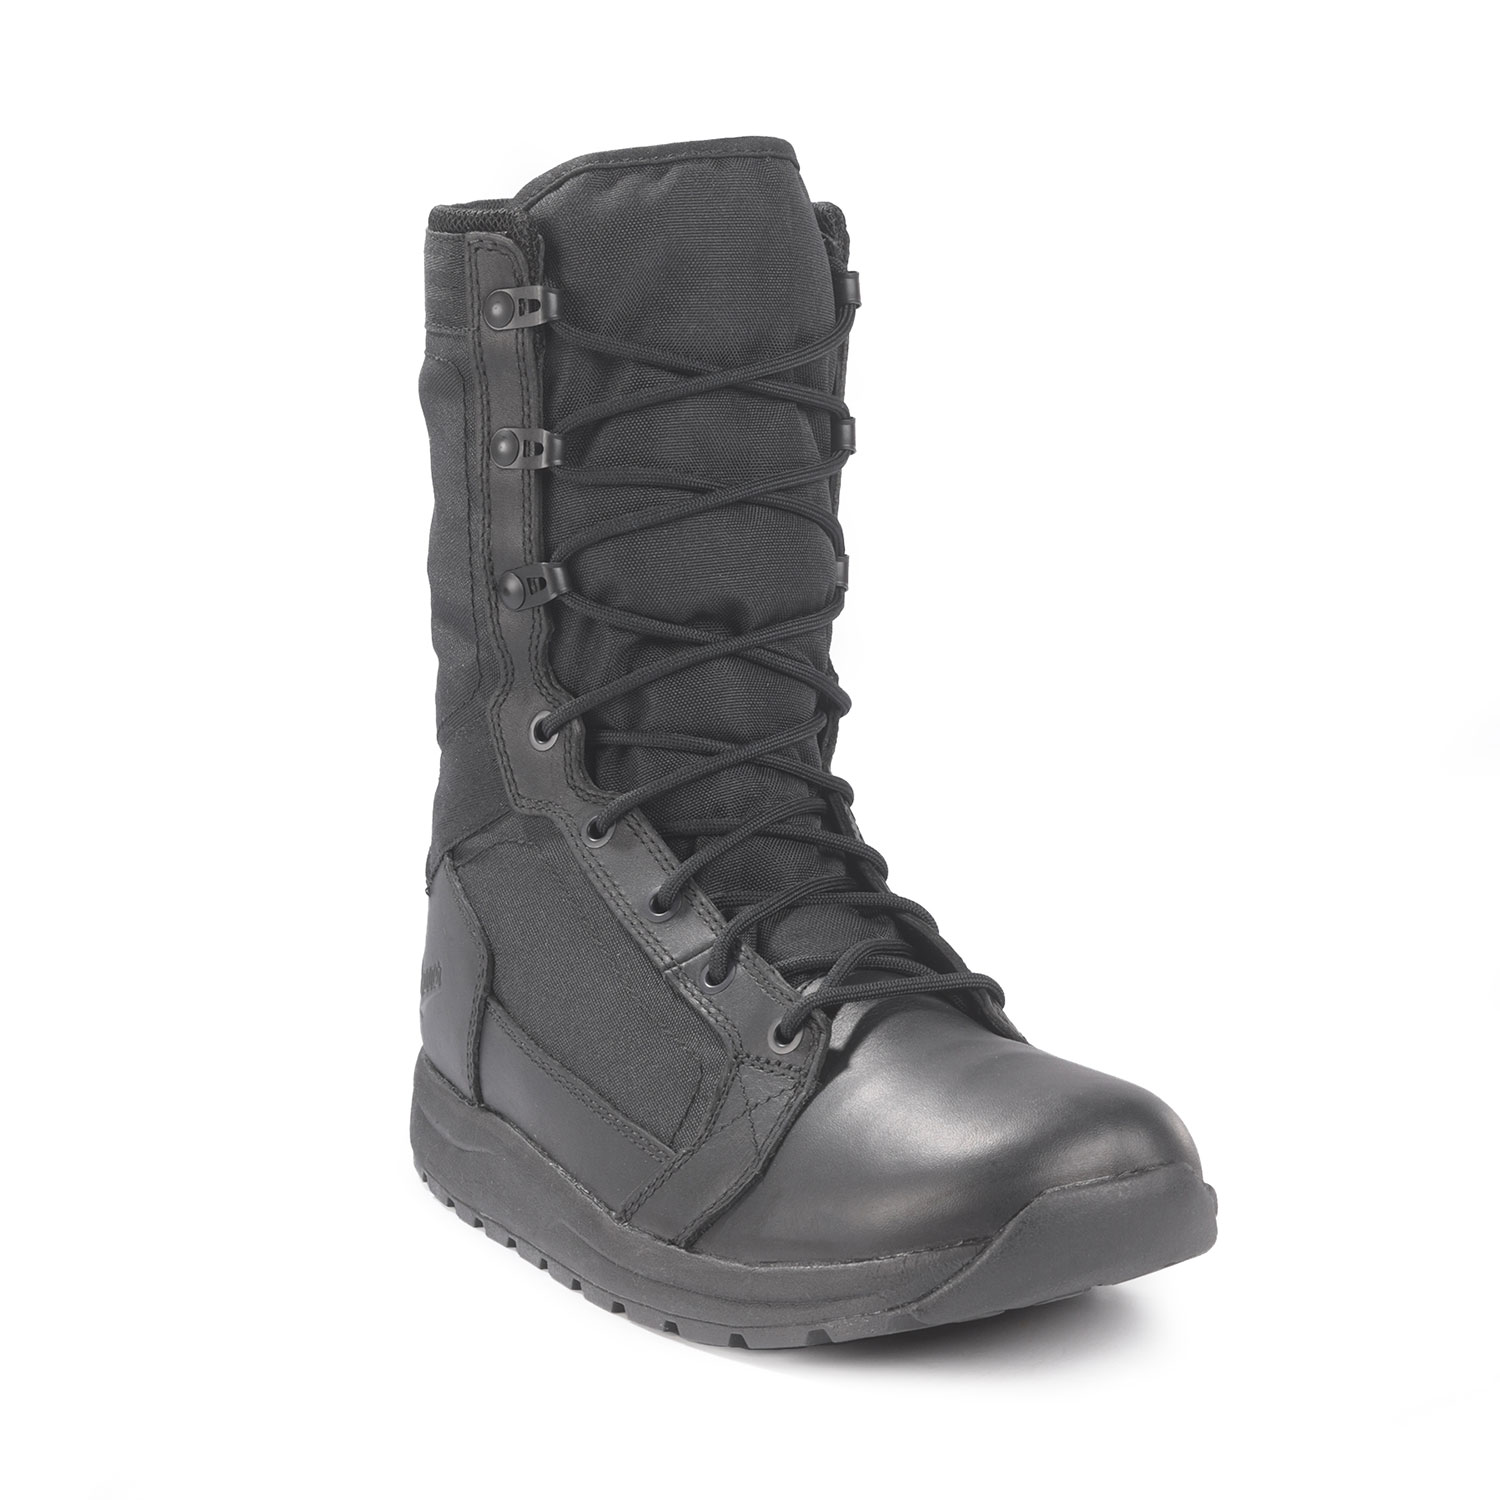 "Danner Tachyon 8"" Polishable Hot Boot"